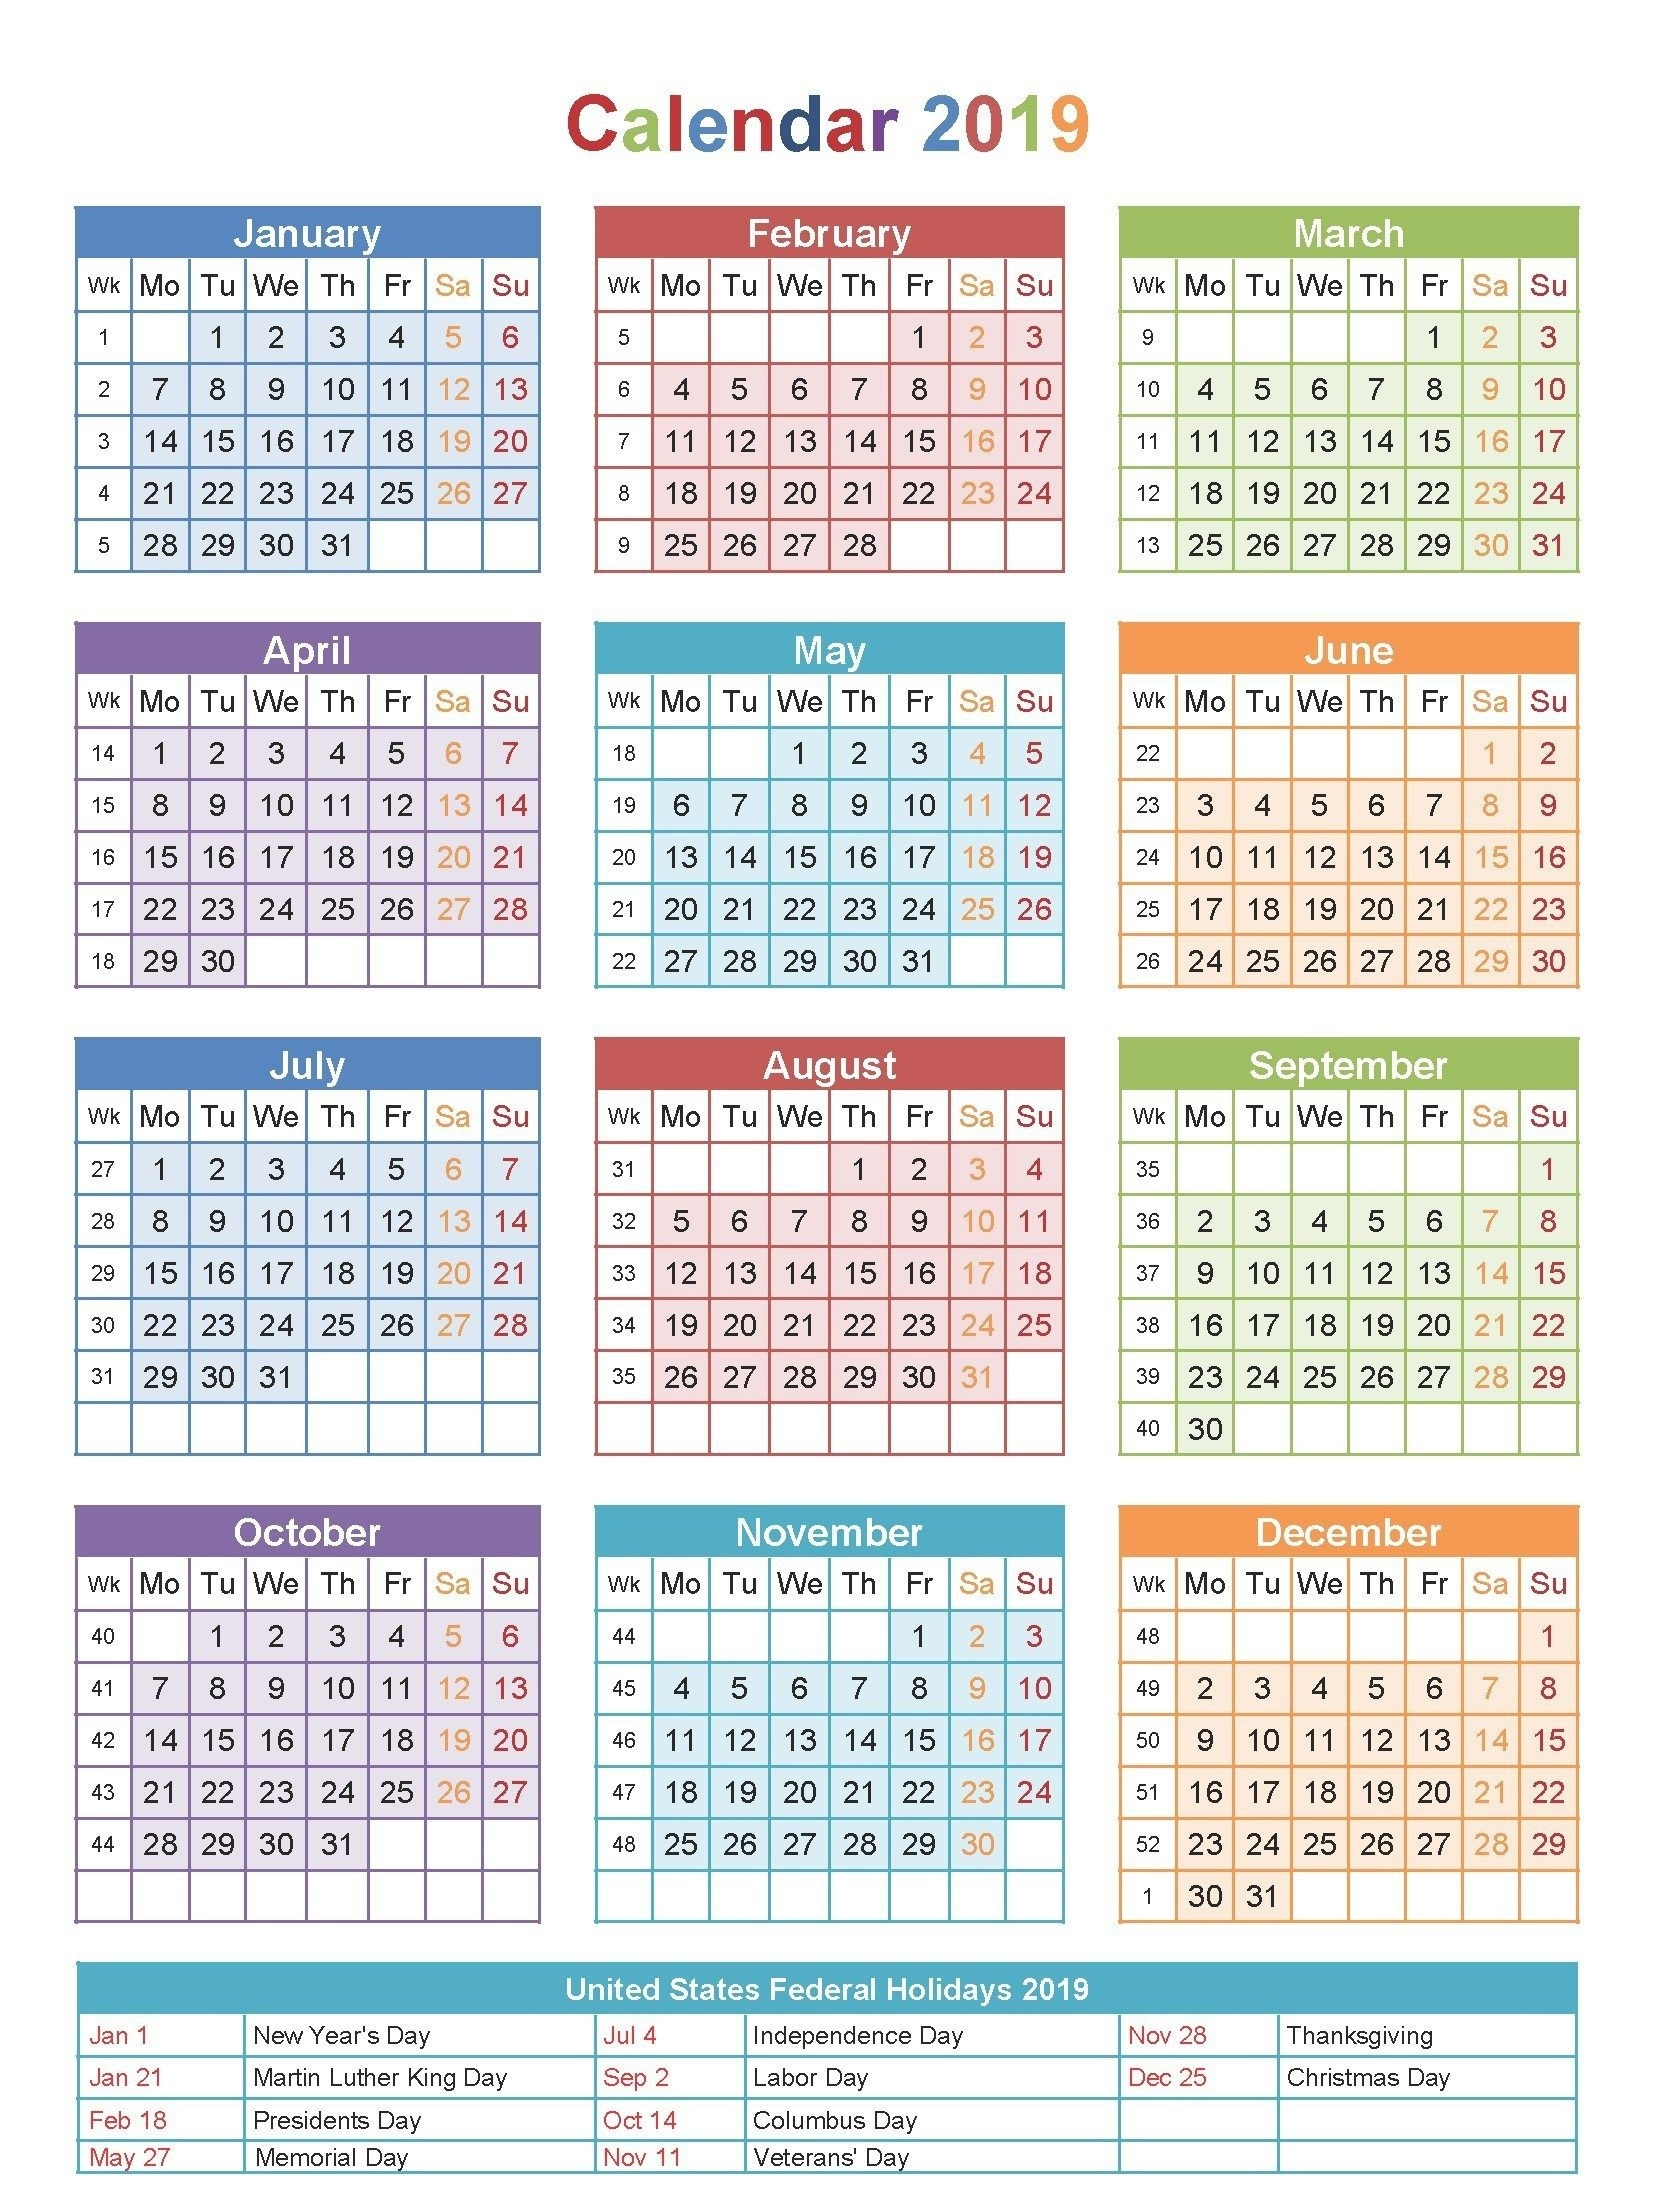 California State Employee Pay Day Calendar 2020 | Calendar